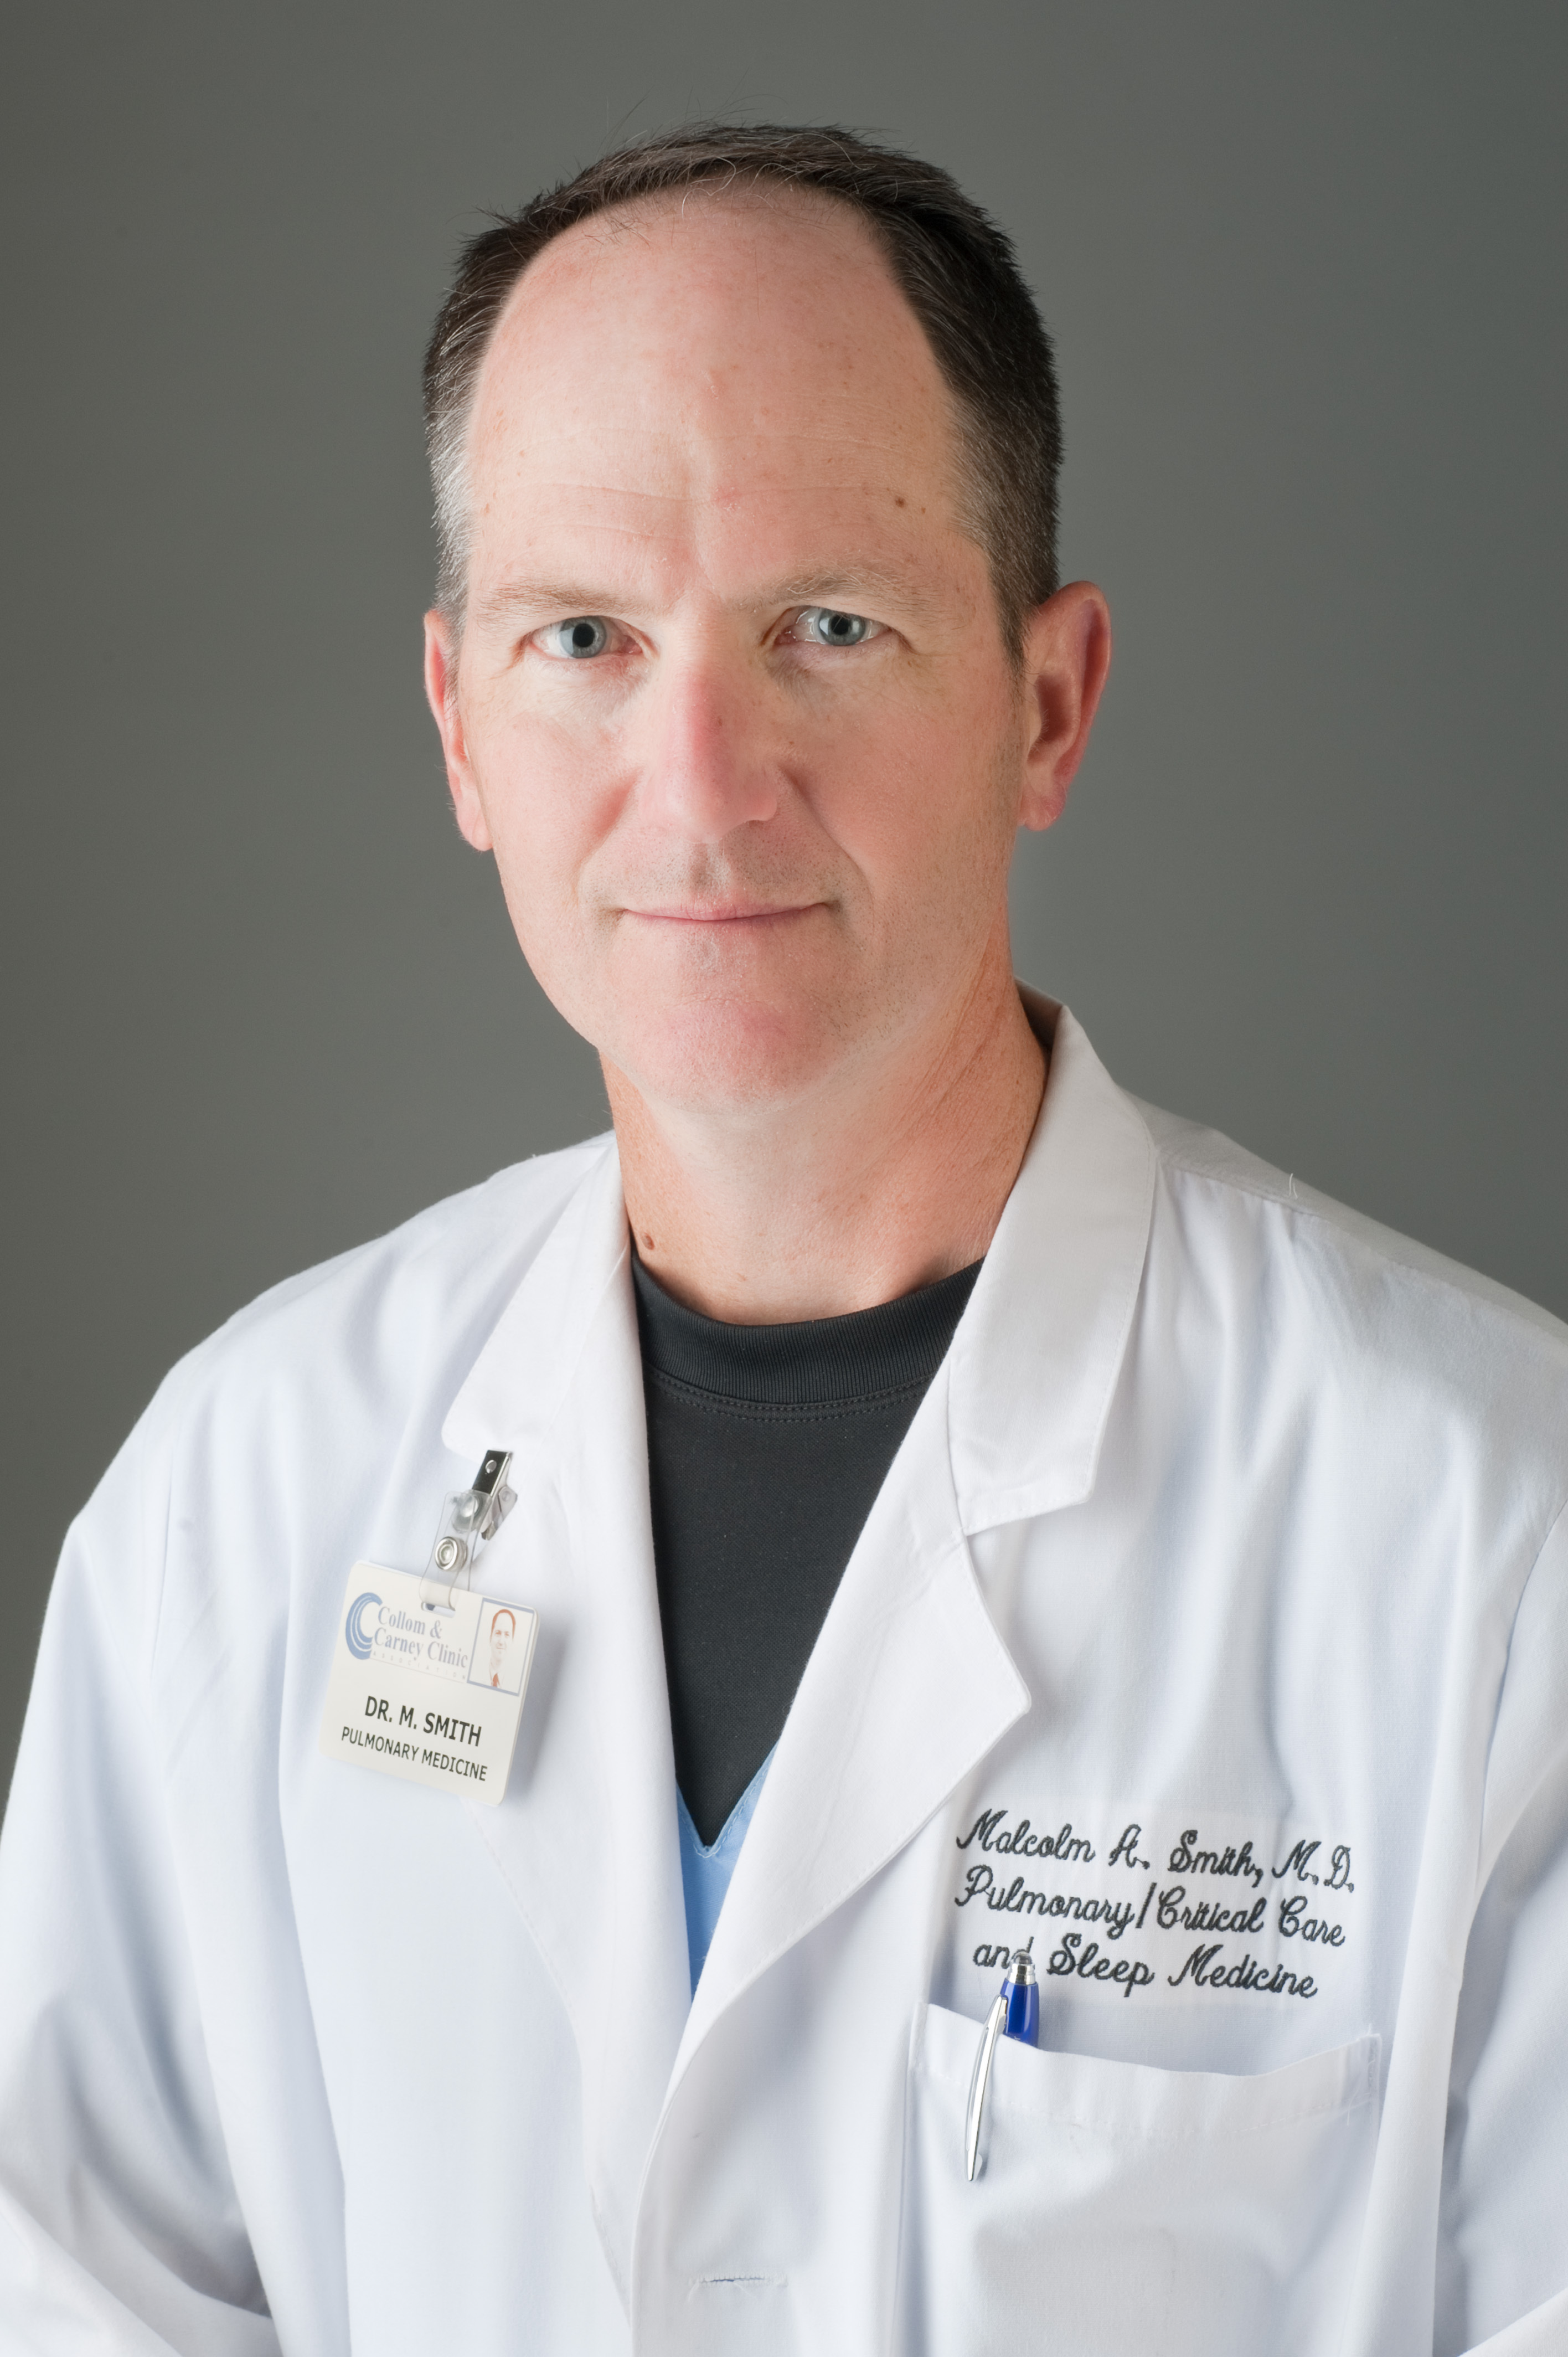 Malcolm A. Smith M.D.